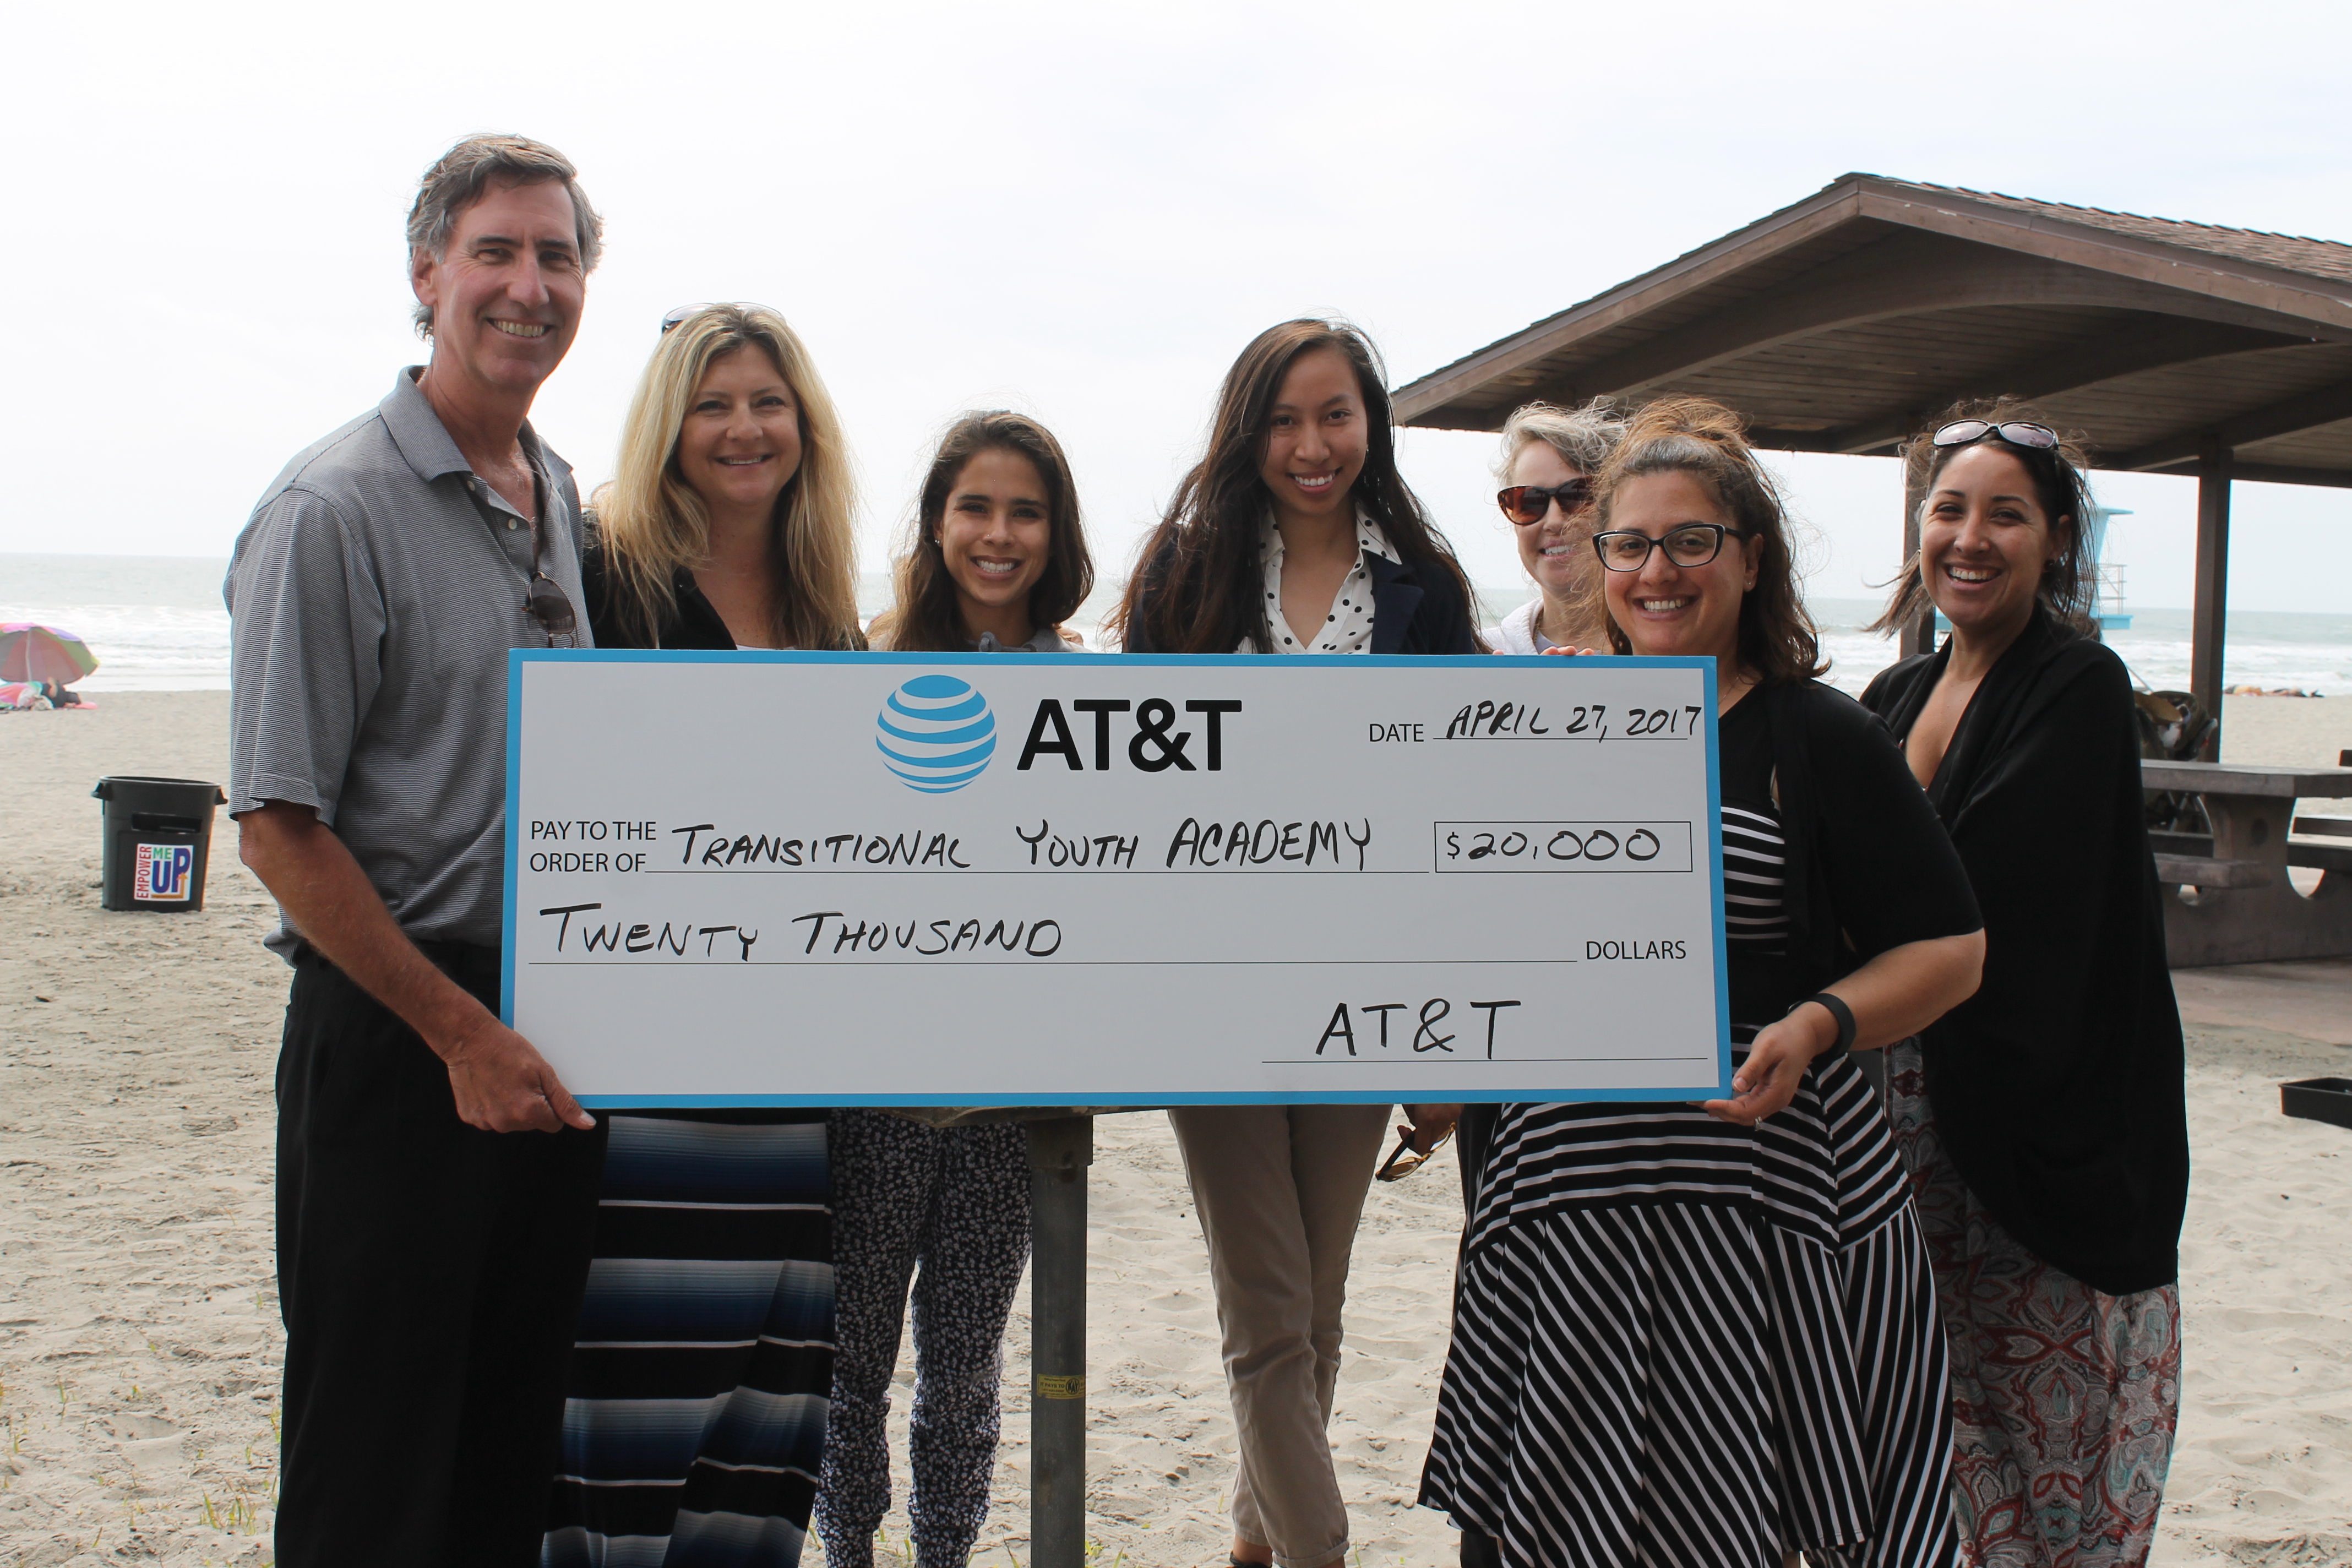 group photo holding large check A T and T giving $20,000 to transitional youth academy